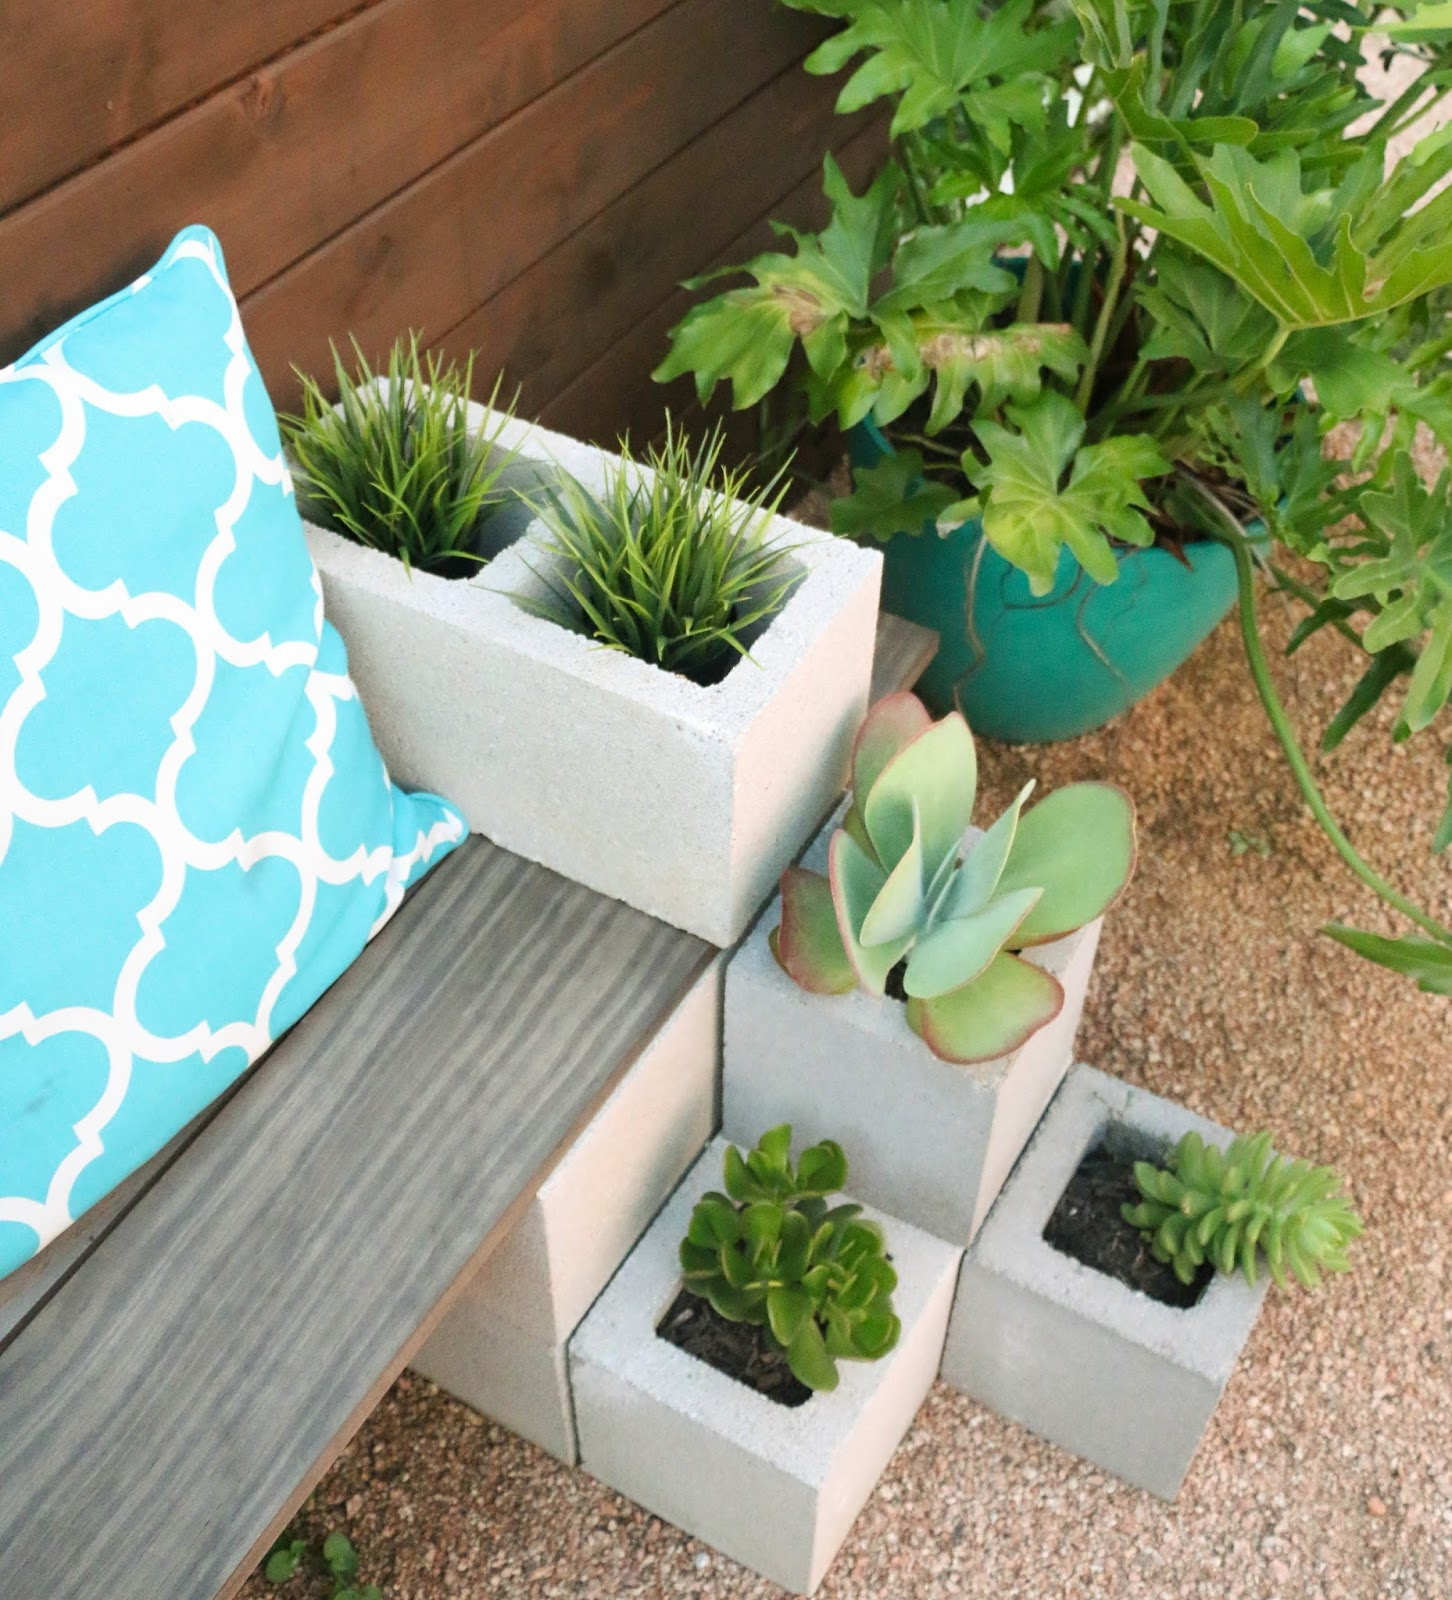 Plant Bench Indoor Diy It Outdoor Succulent Bench A Kailo Chic Life